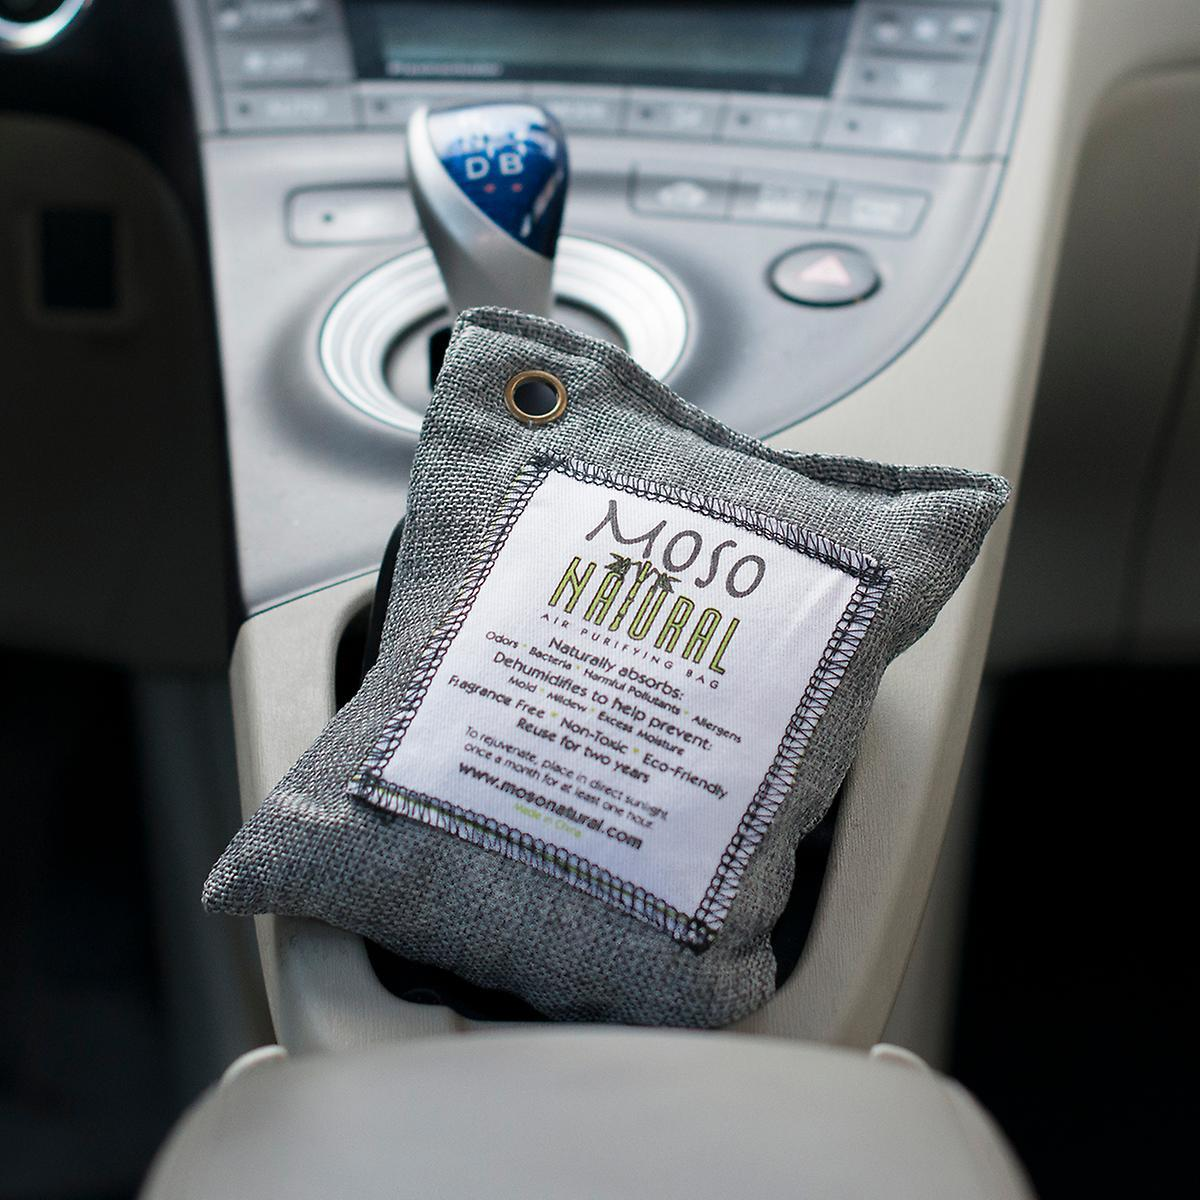 remove milk smell from car Bamboo charcoal